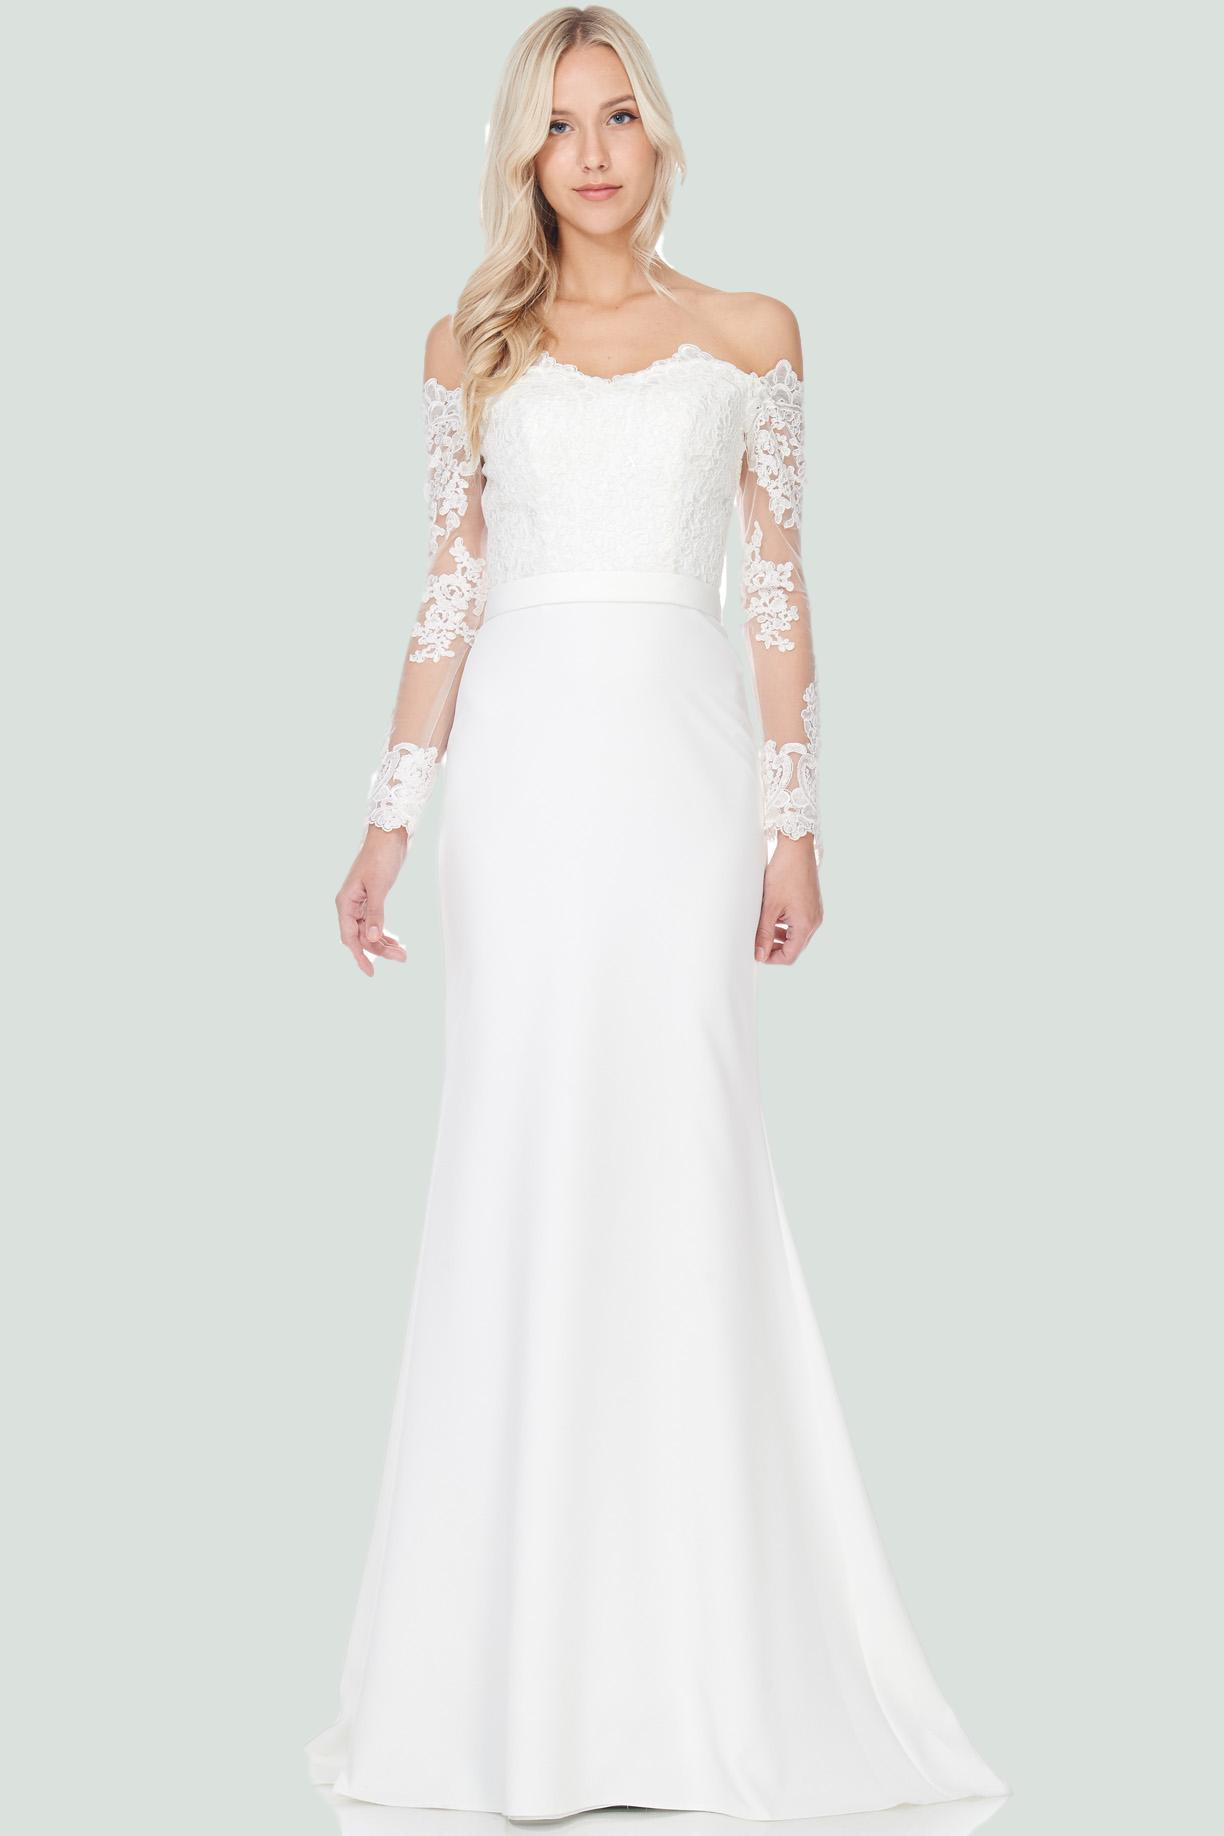 Elegant Simple Long Sleeve Lace Wedding Dress